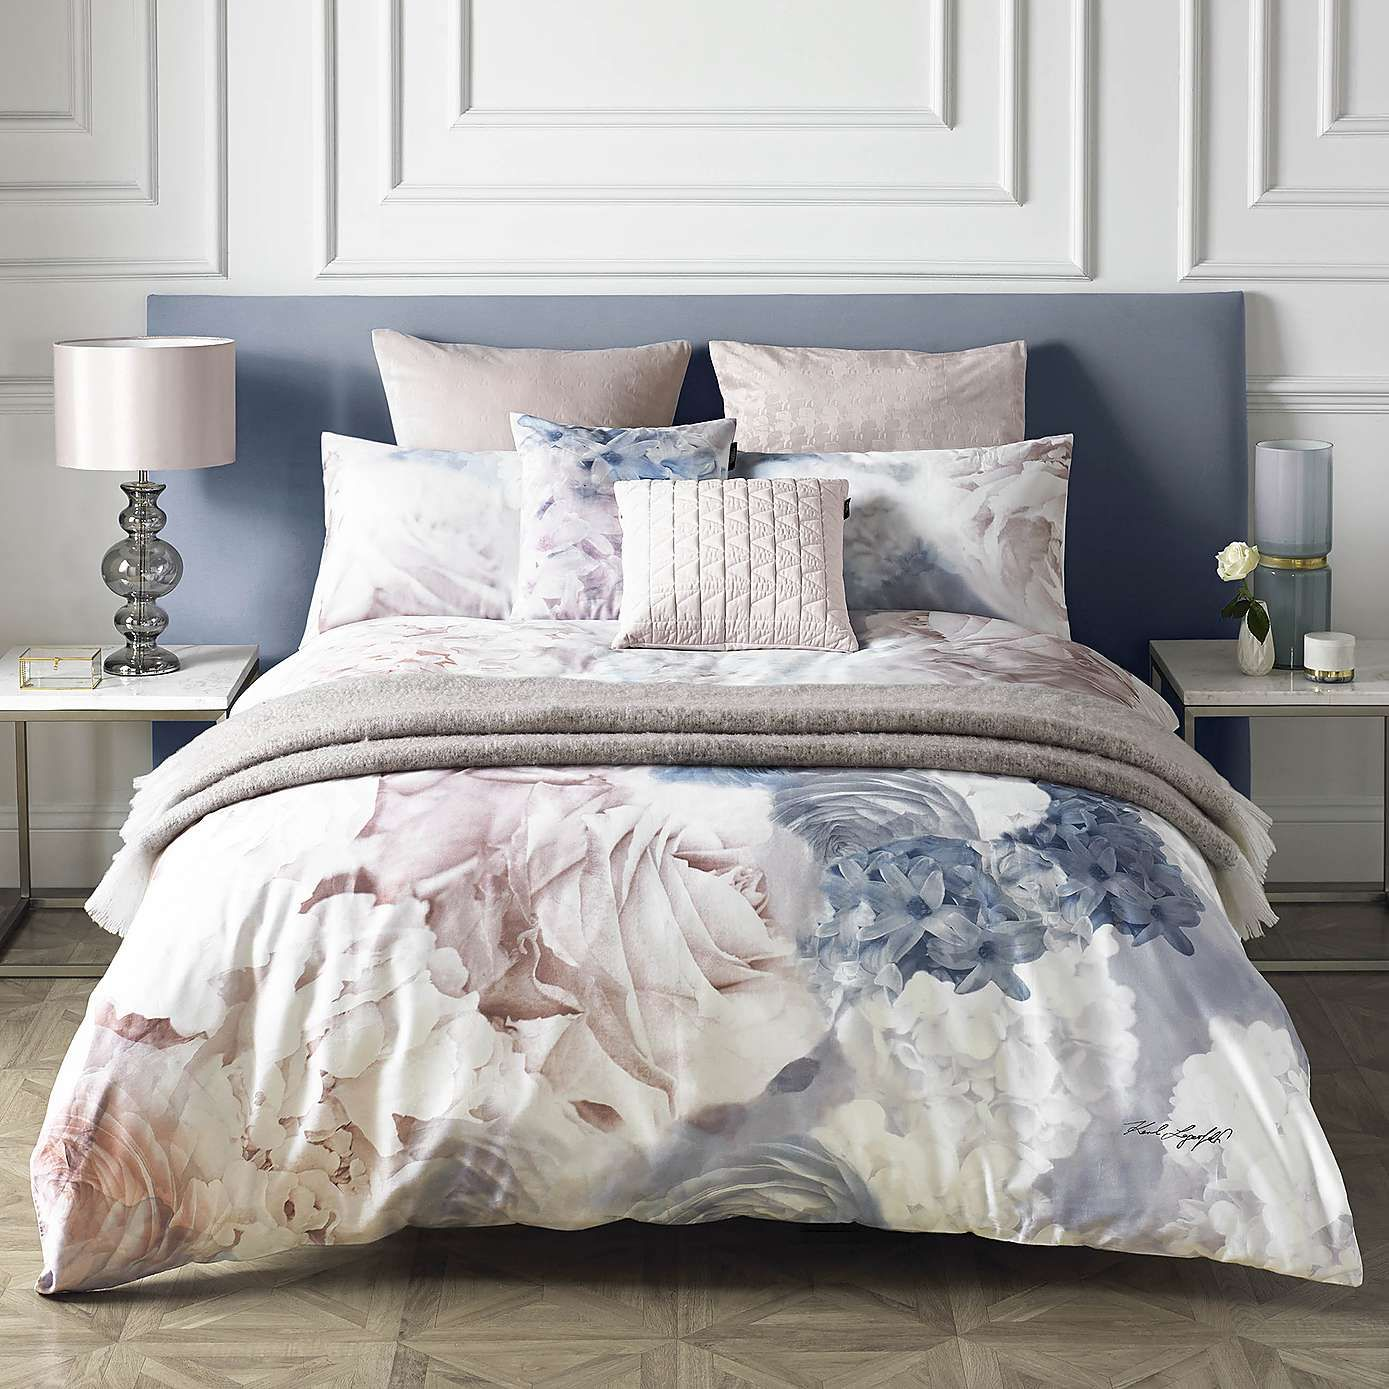 Karl Lagerfeld Flourish Digitally Printed 100 Cotton Duvet Cover Dunelm In 2020 Bed Linens Luxury Blue Bedding Bed Linen Design